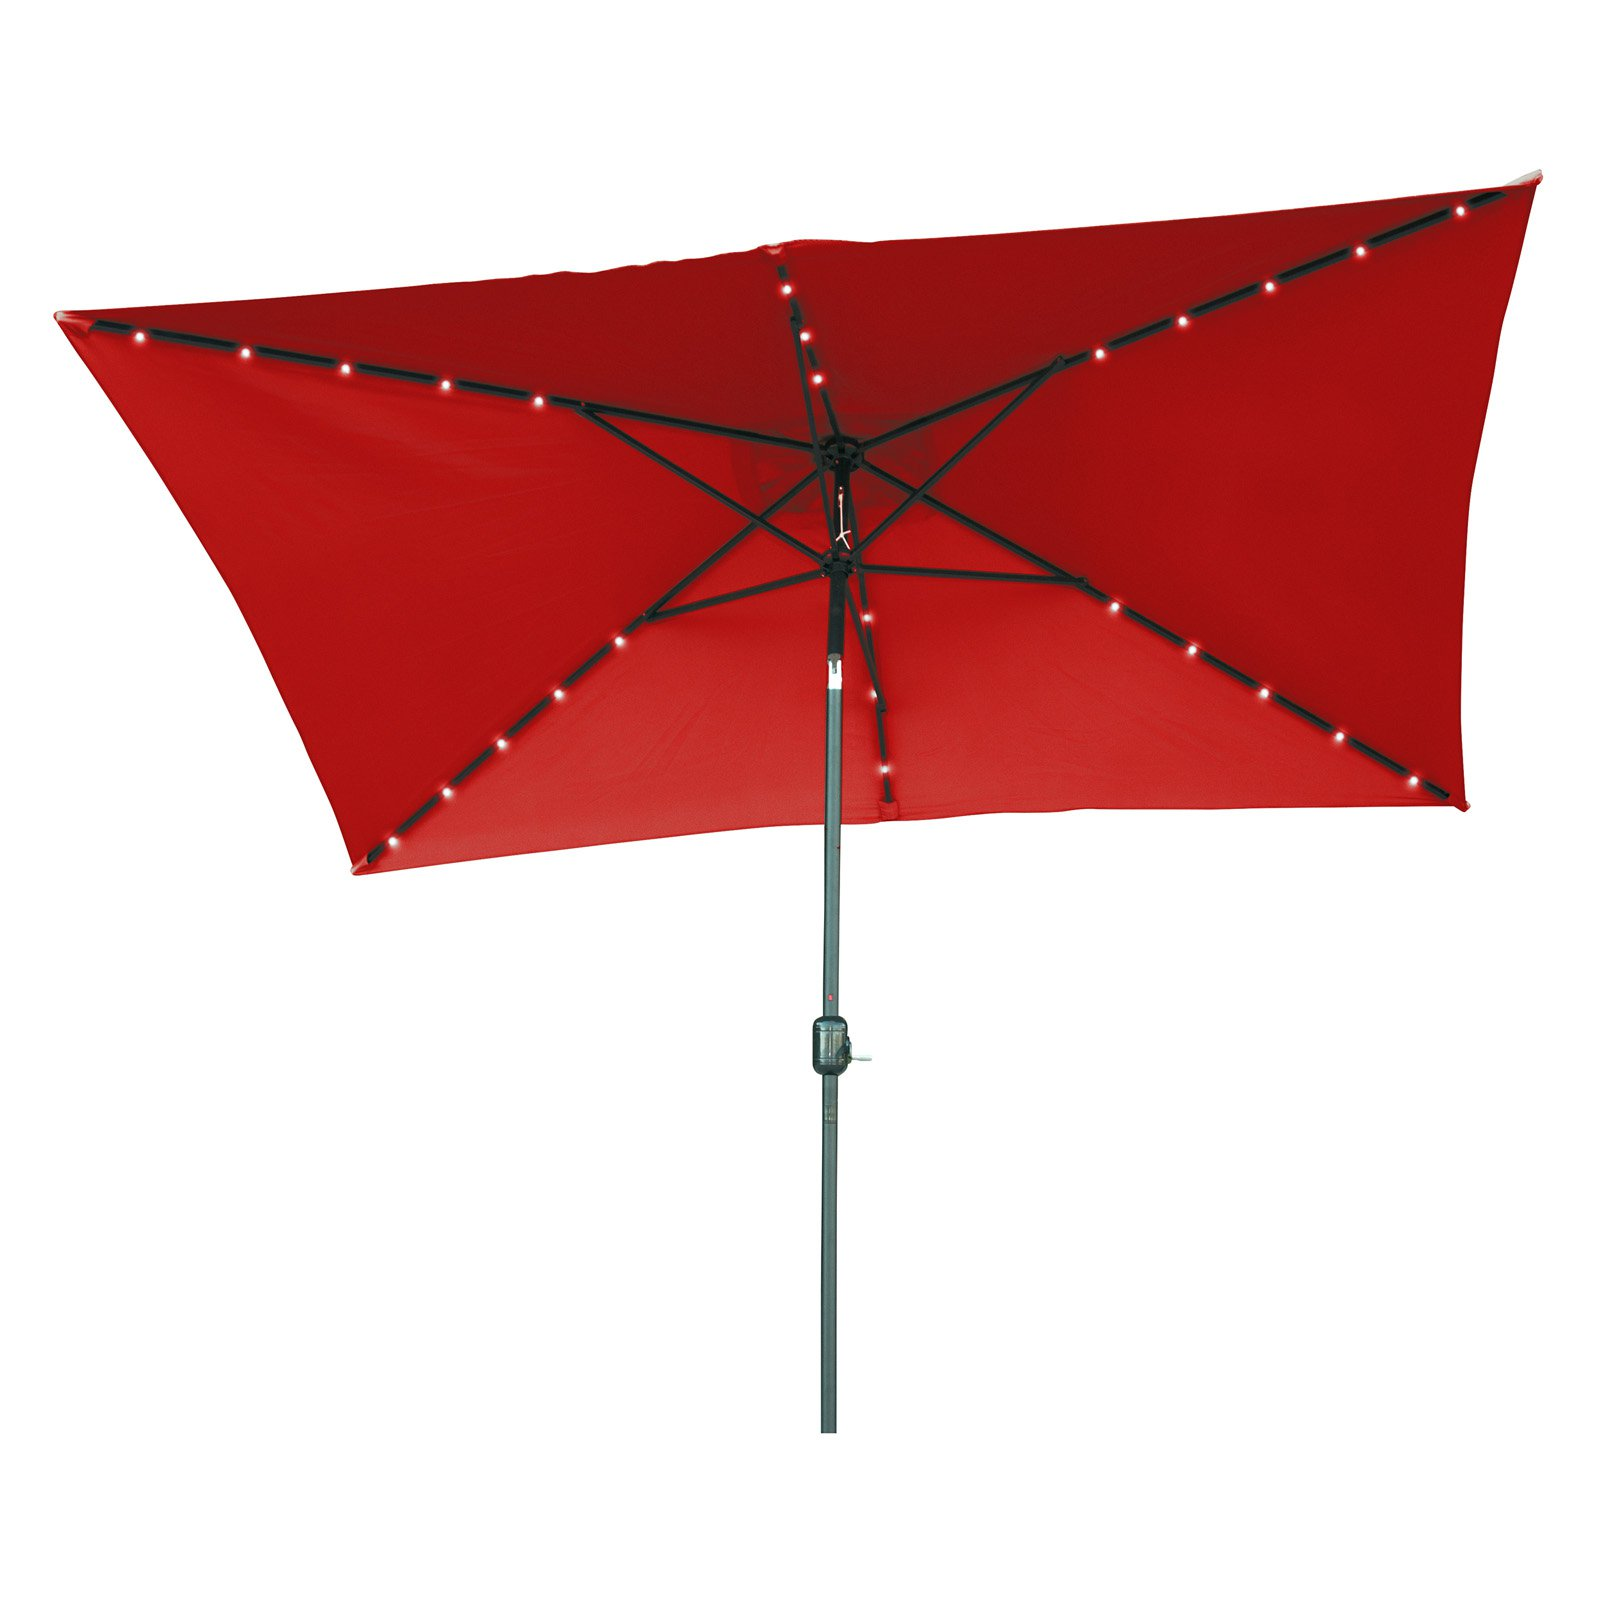 Trademark Innovations 10' x 6.5' Rectangular Solar Powered LED Lighted Patio Umbrella by Generic